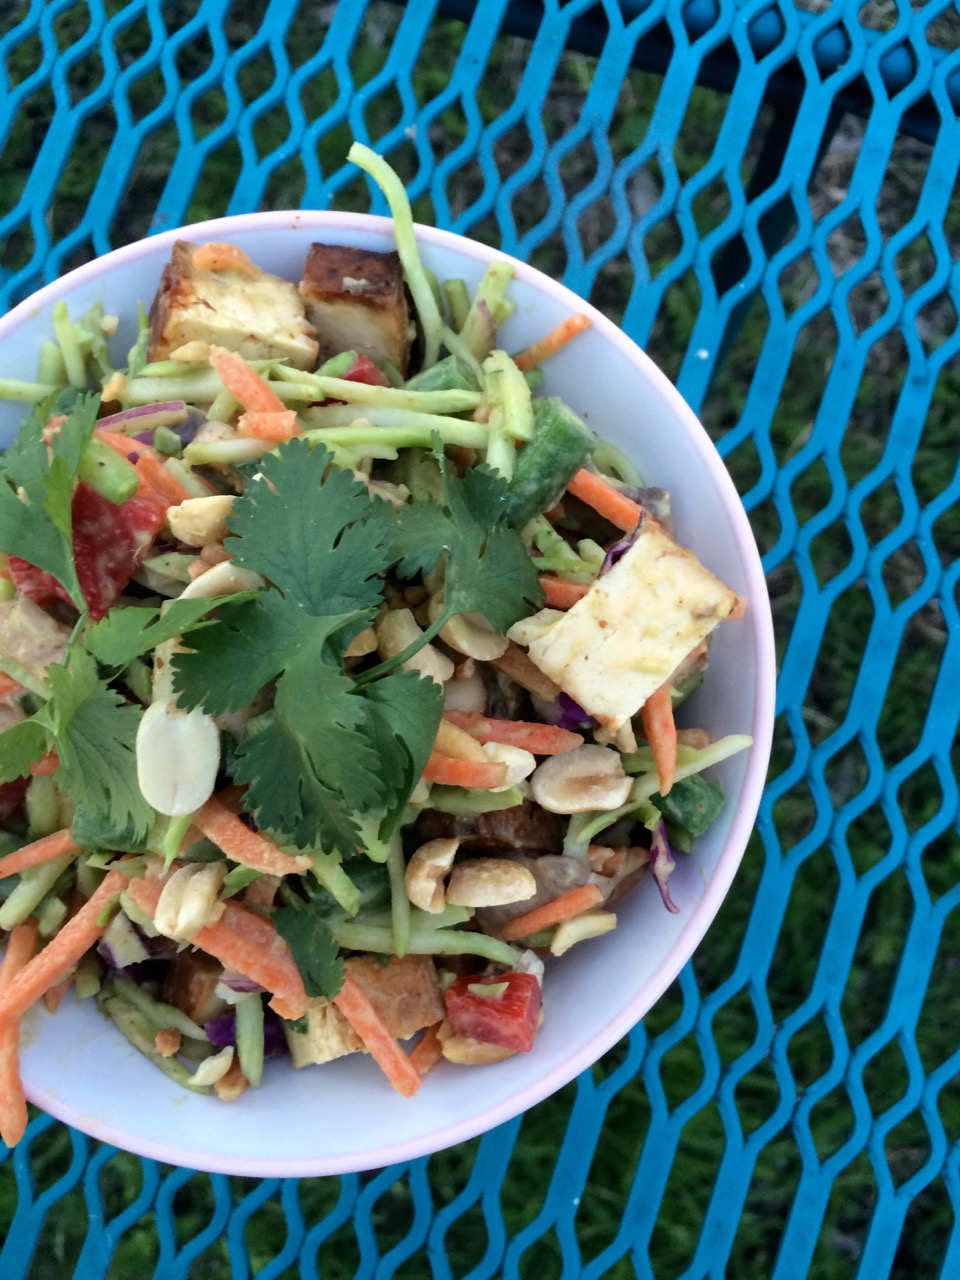 Crunchy Chopped Thai Peanut Tofu Salad Vertical